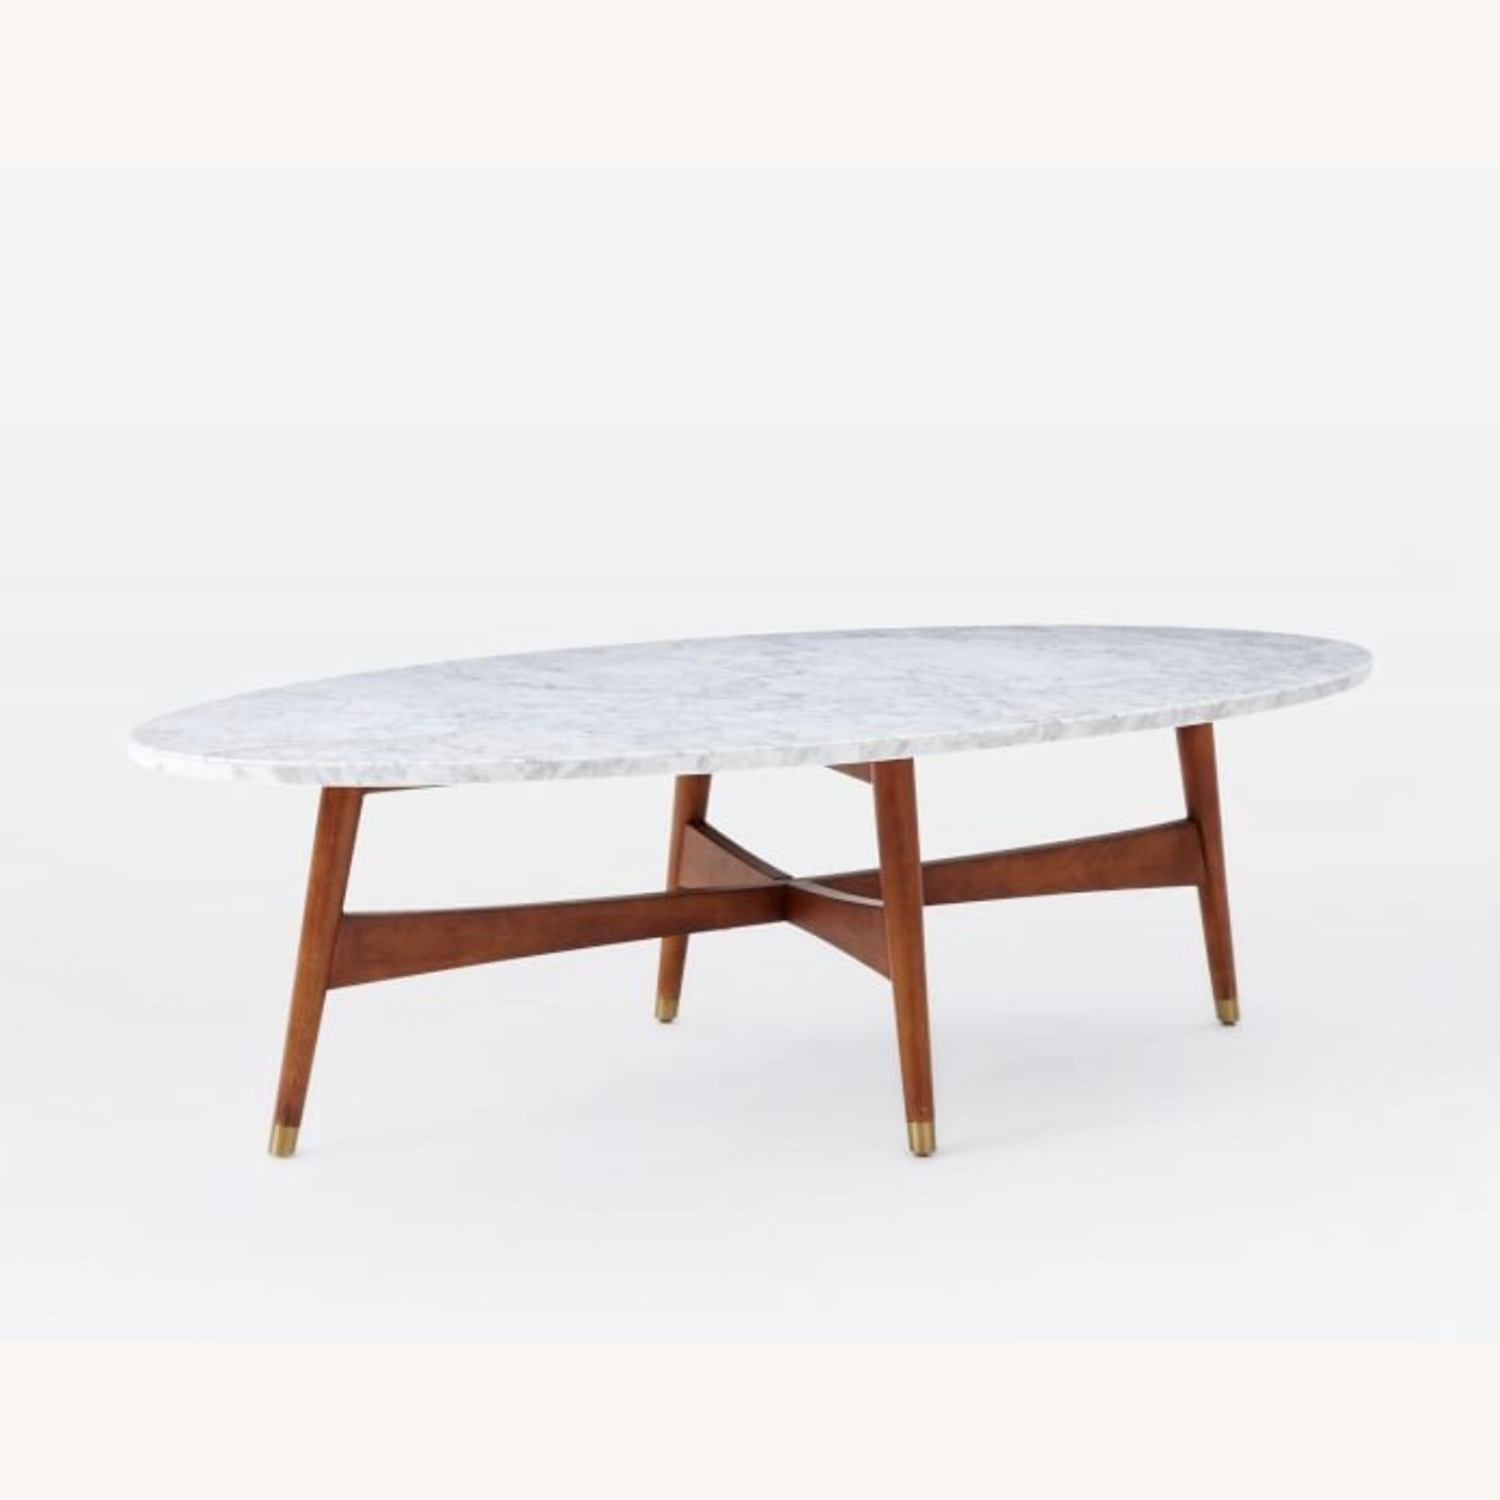 West Elm Reeve Mid-Century Oval Coffee Table - Marble Top - image-1